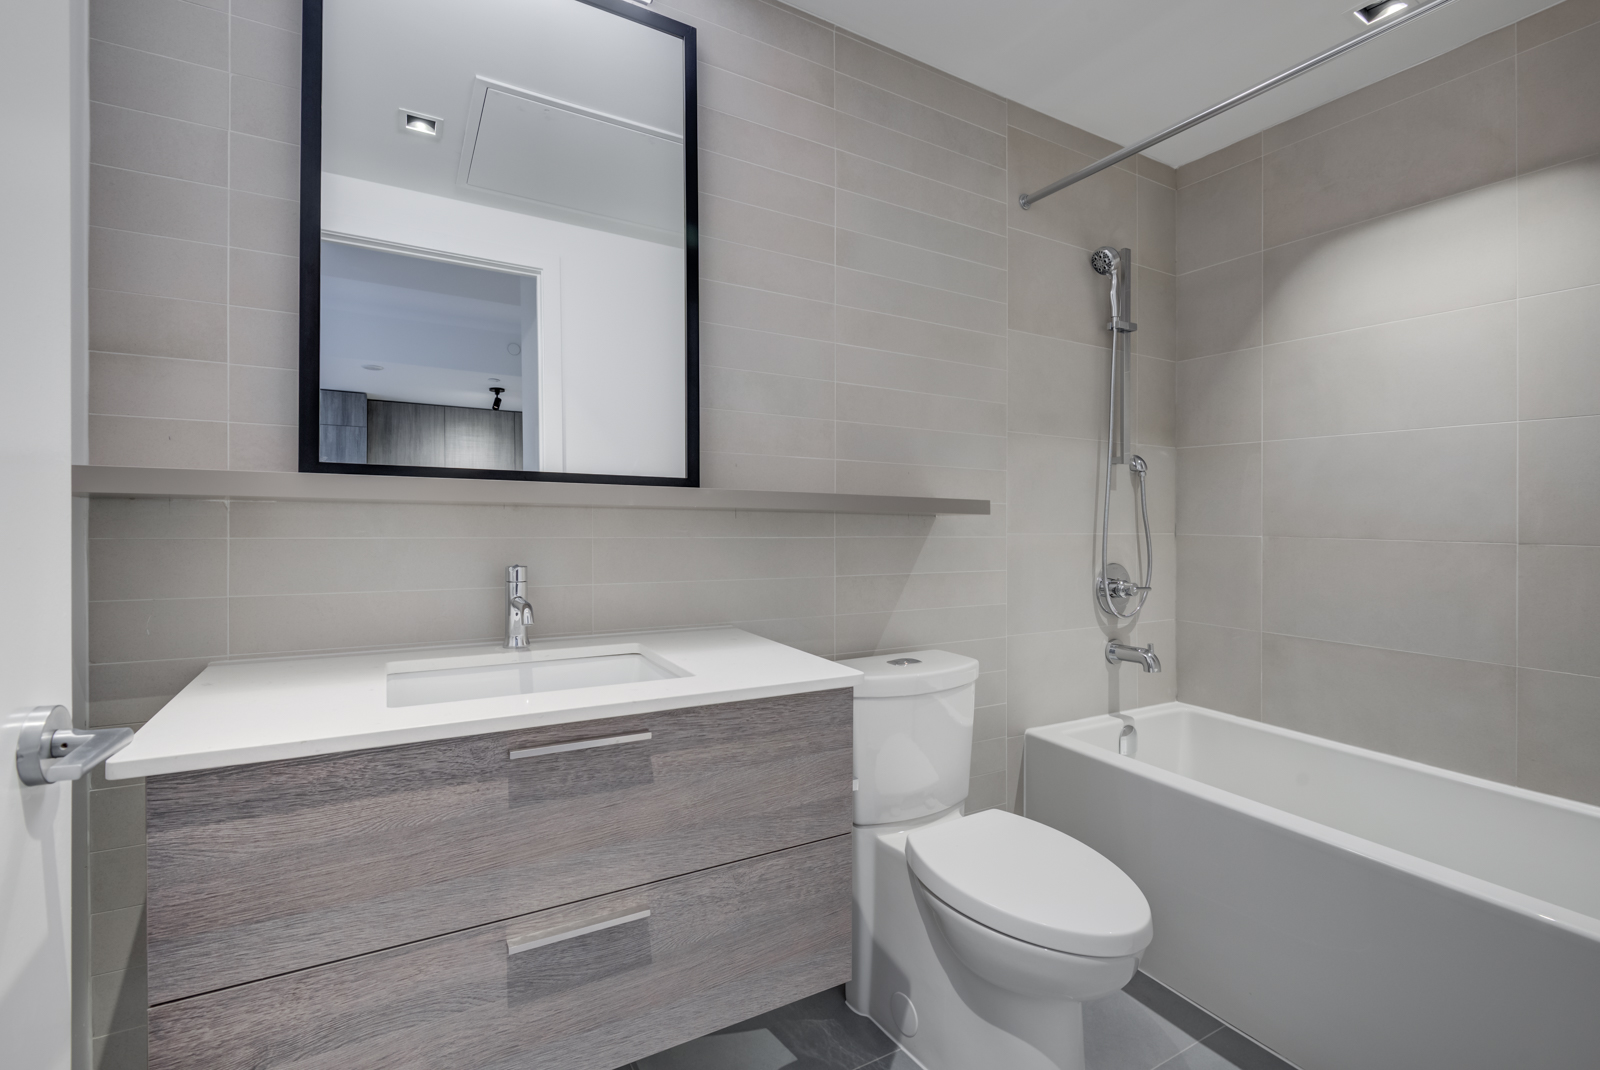 4-piece bathroom with white soaker tub, toilet, vanity, mirror and brown cabinets and tiles.